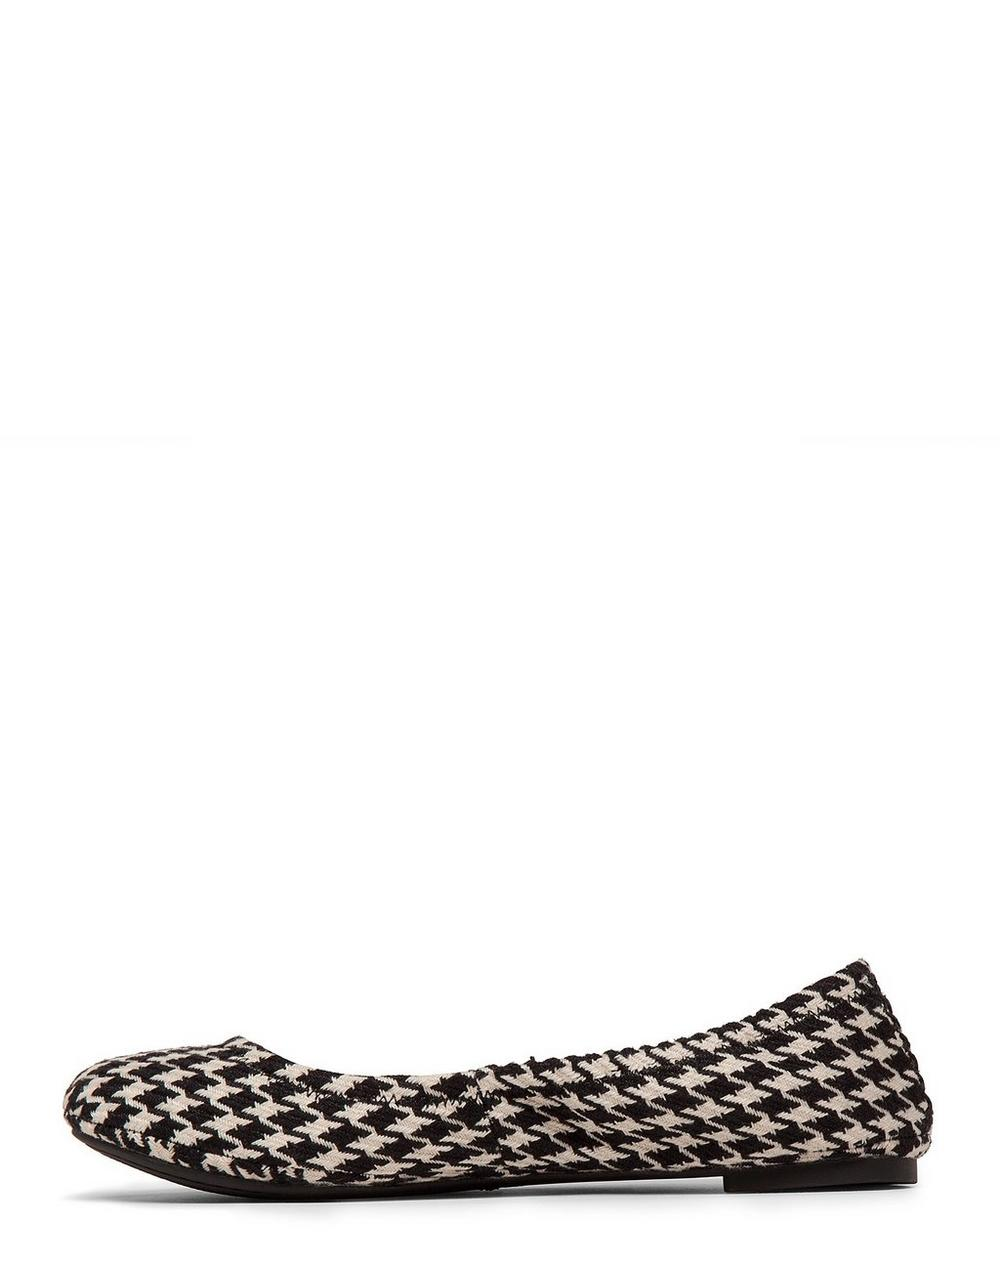 EMMIE LEATHER FLATS, image 3